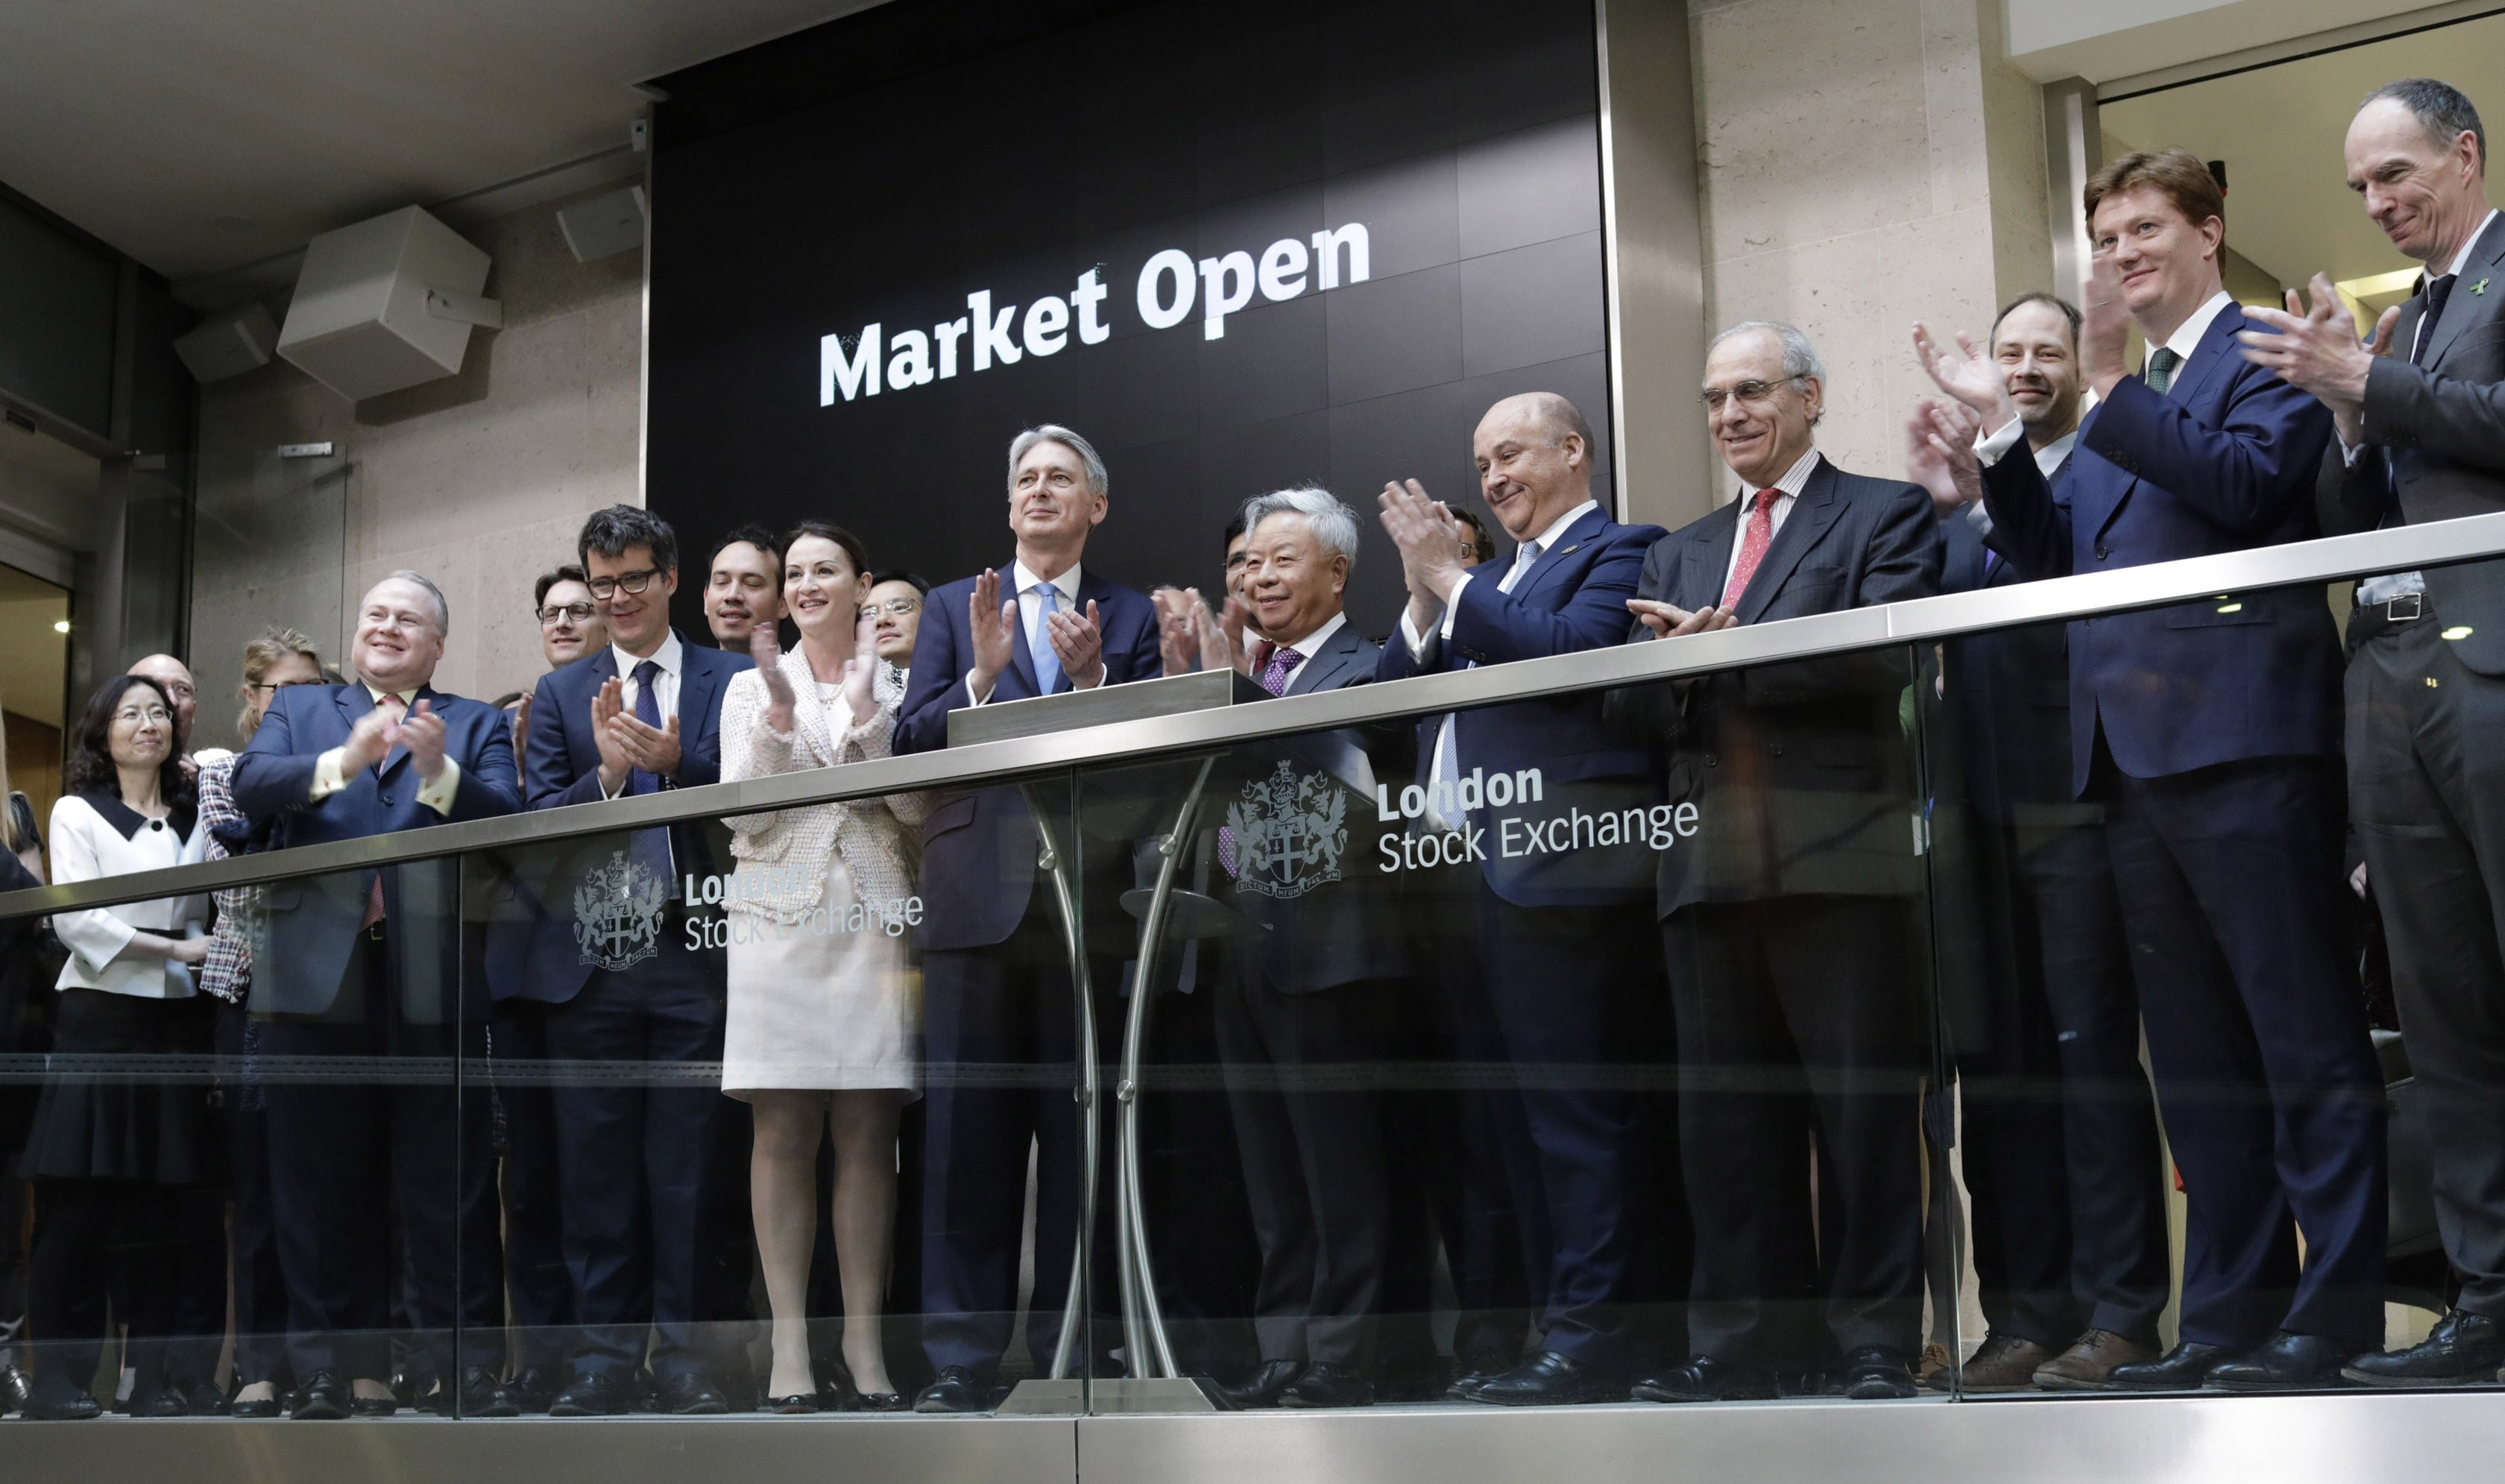 Launch of $2.5bn Asian bond a 'vote of confidence' in London Stock Exchange